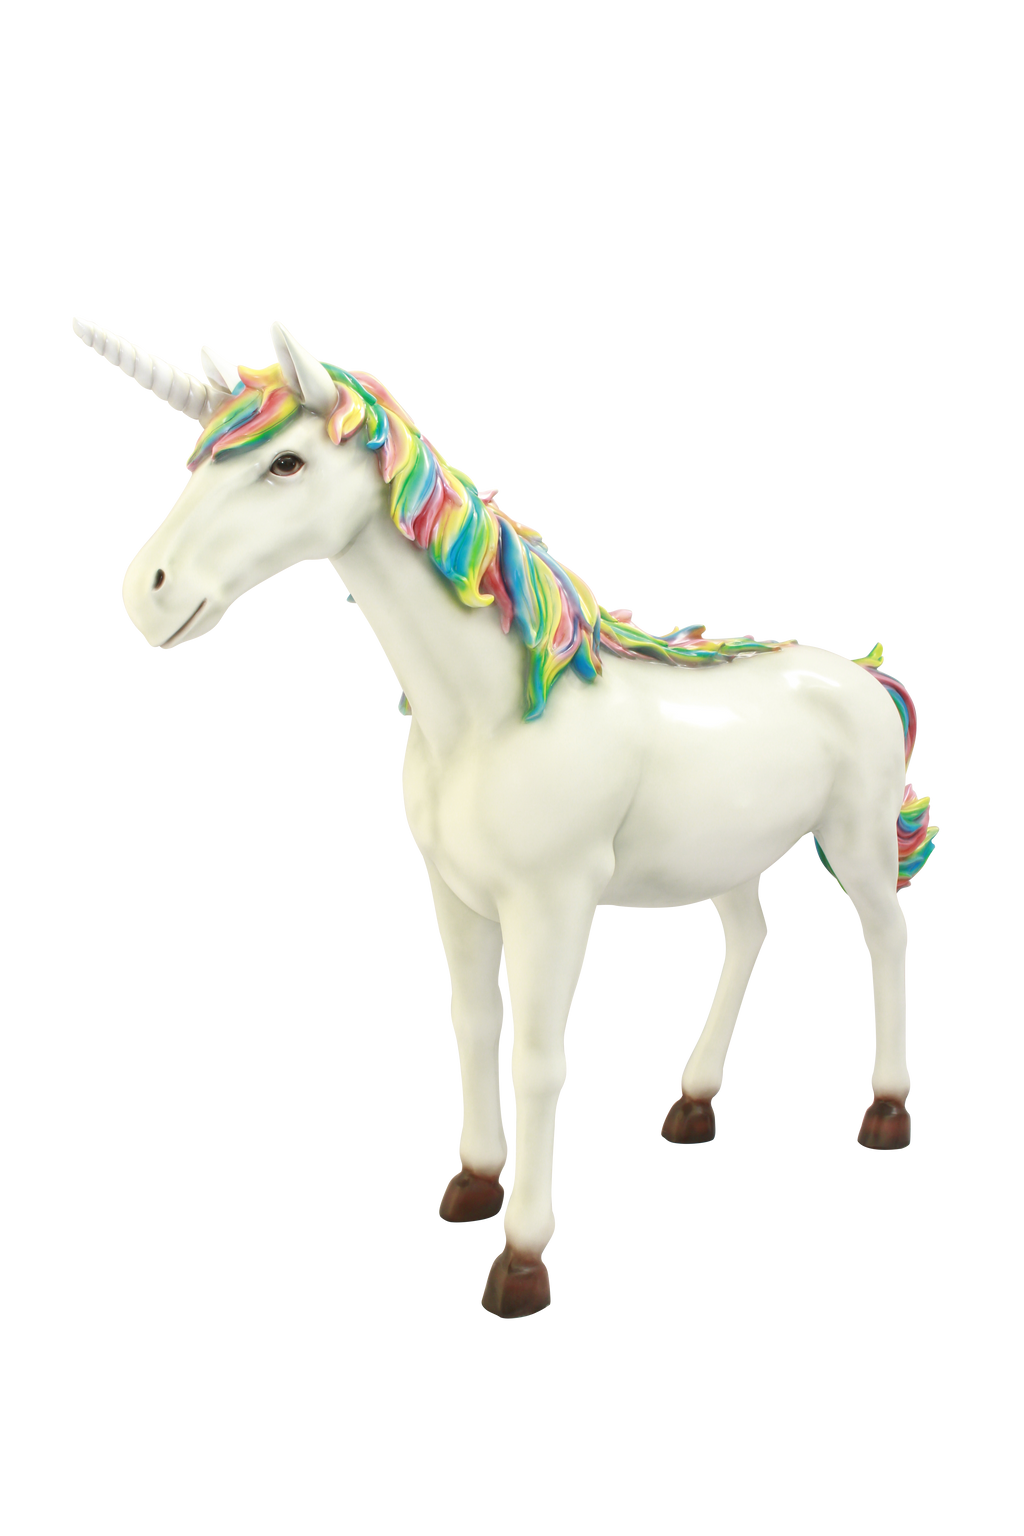 Unicorn # 2 Rainbow Mythical Prop Life Size Resin Horse Statue - LM Treasures Prop Rentals